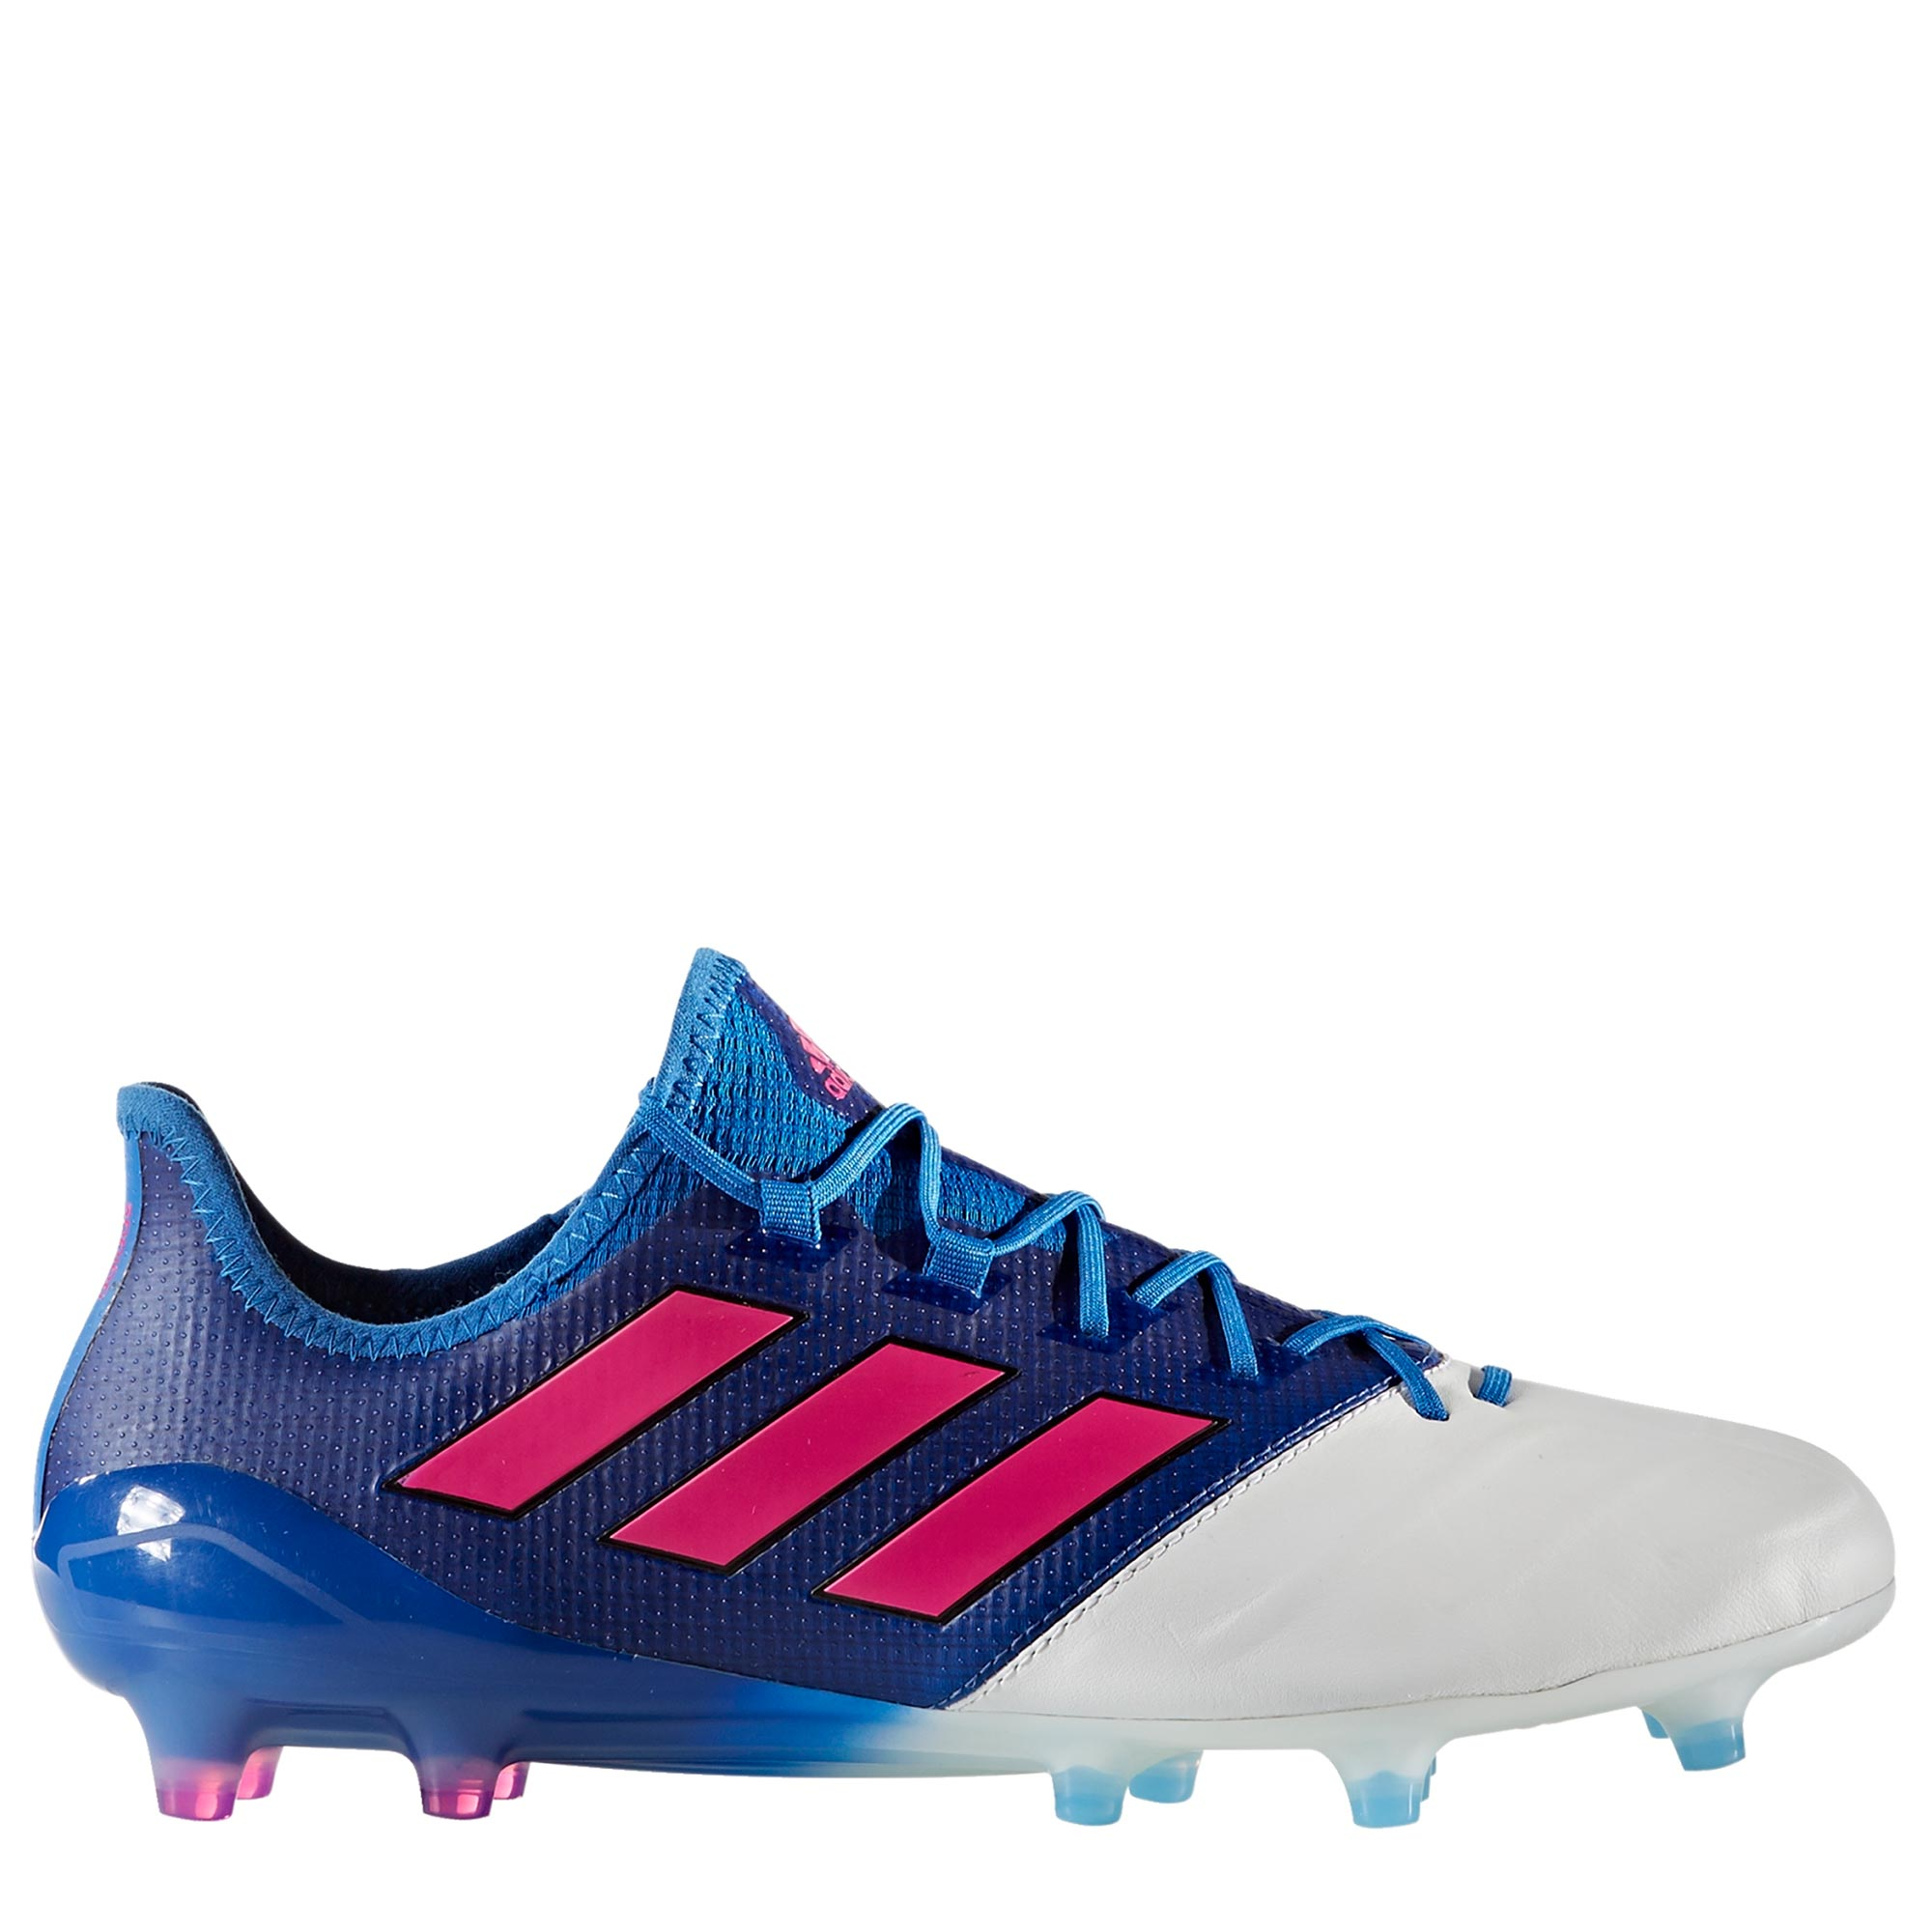 adidas Ace 17.1 Leather Firm Ground Football Boots - Blue/Shock Pink/W